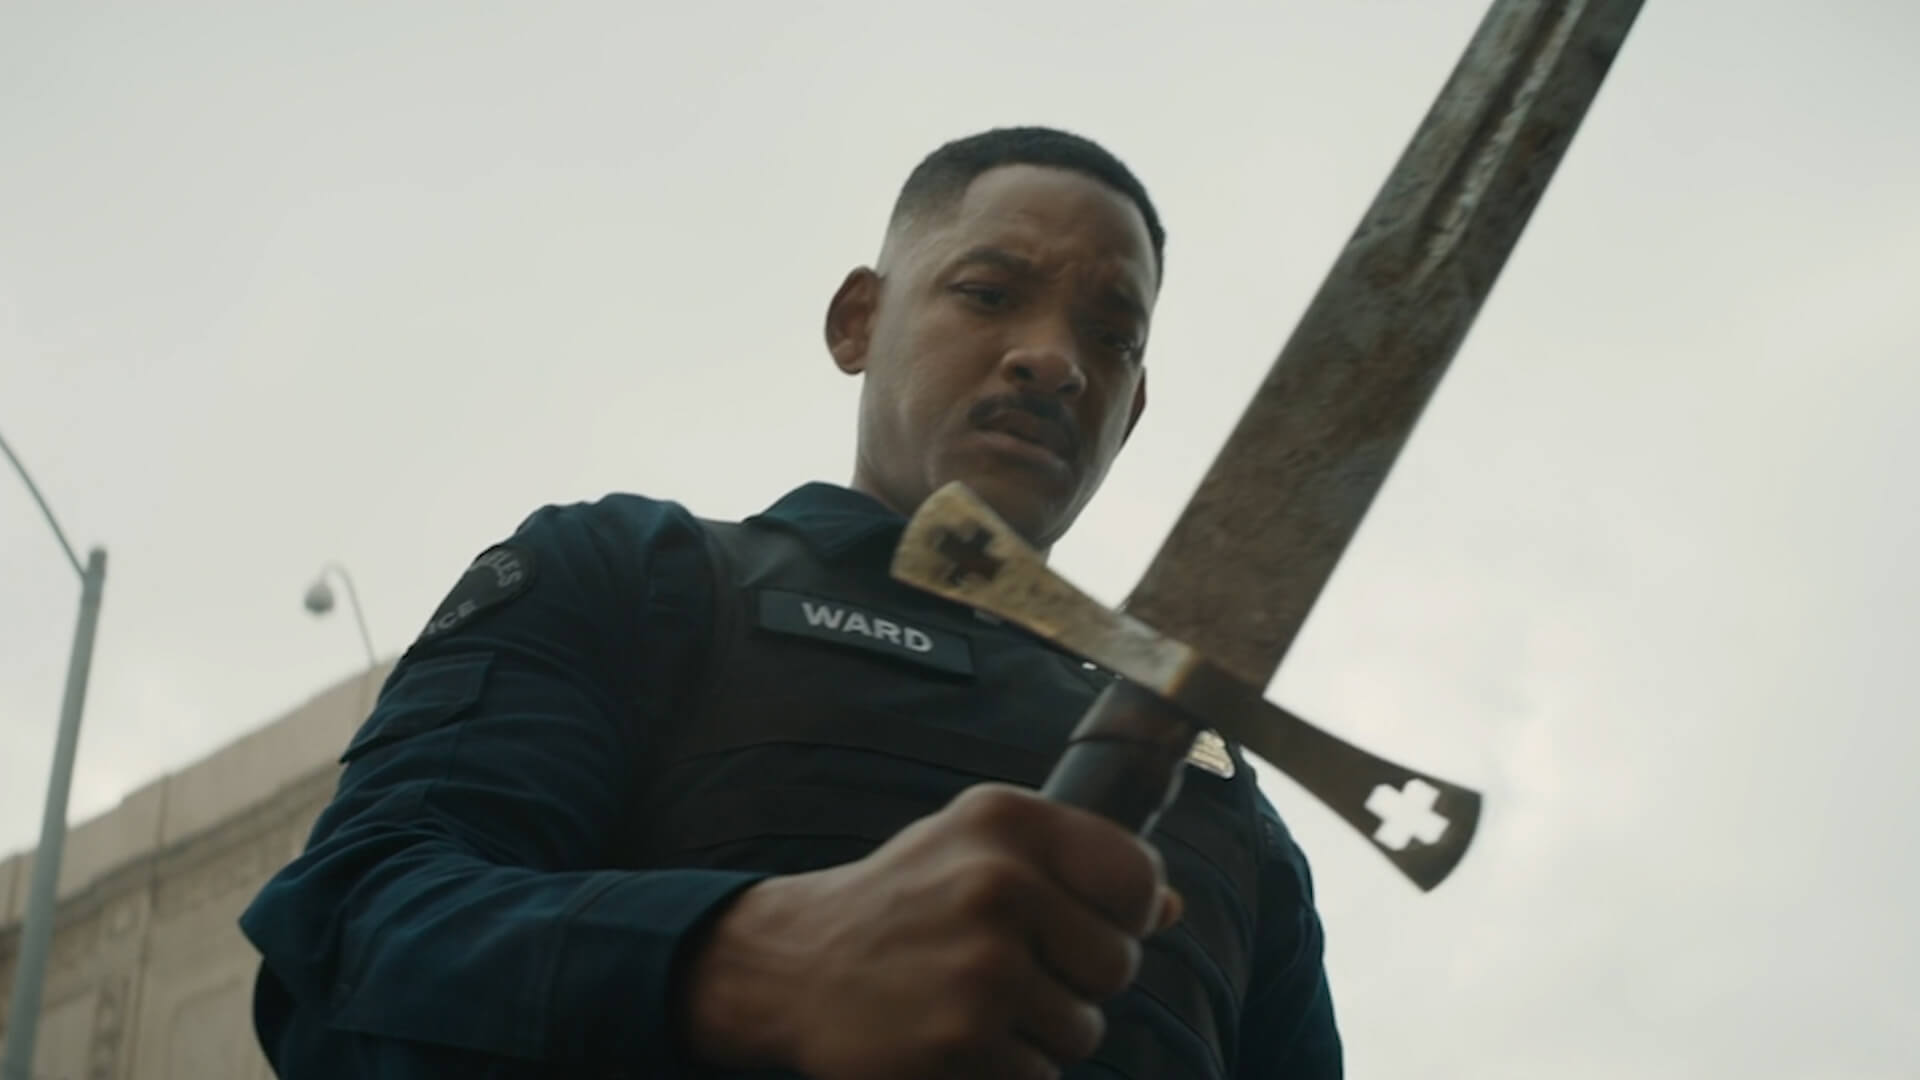 Bright, Netflix's New Original Film, Reaches an Impressive Milestone